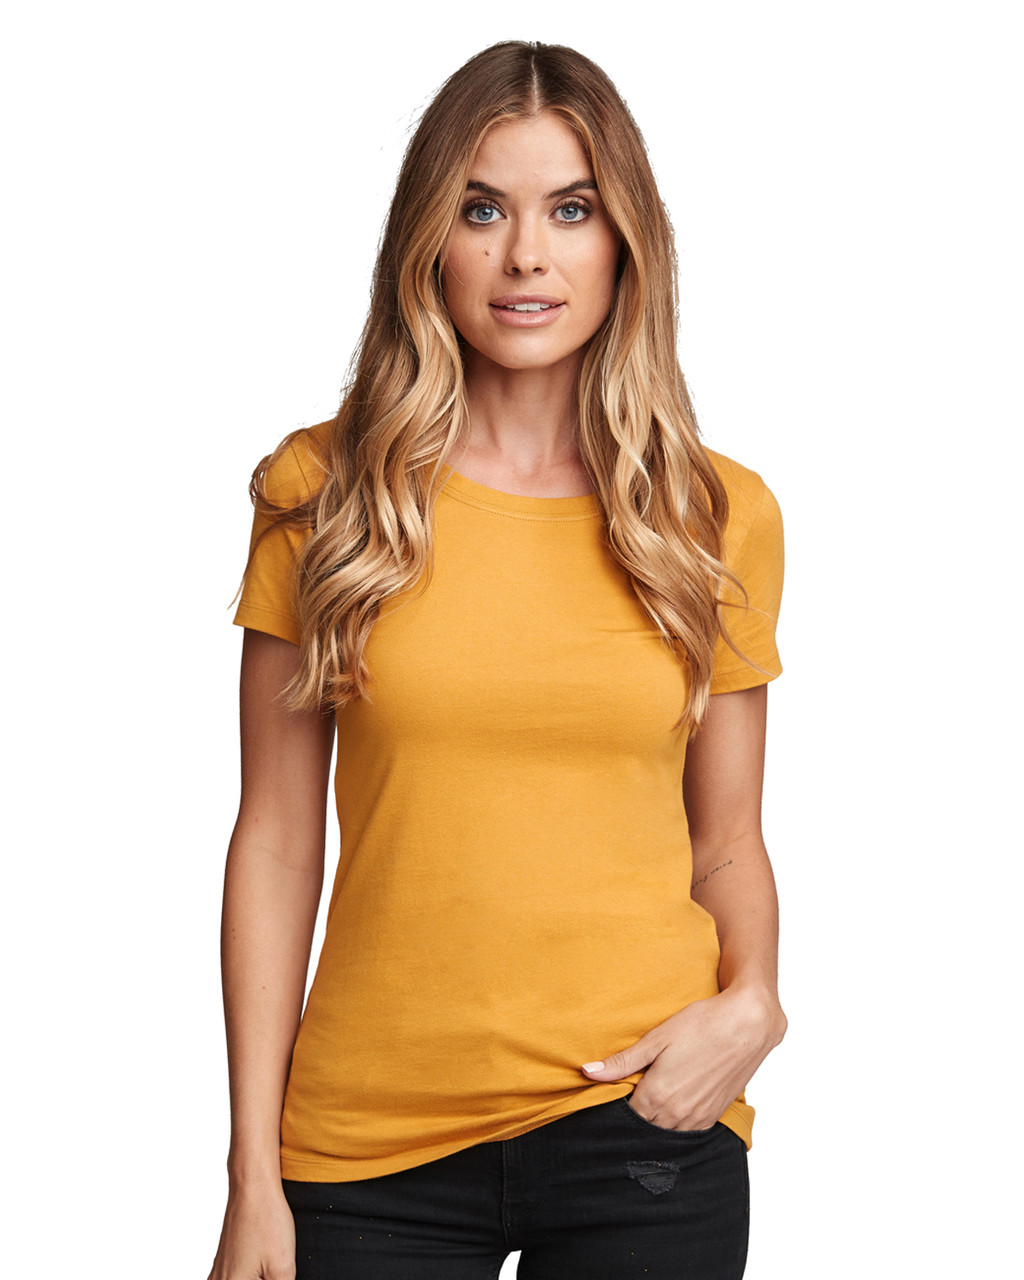 Antique Gold - N1510 Next Level Ladies' Ideal Short-Sleeve Crew Tee | Blankclothing.ca